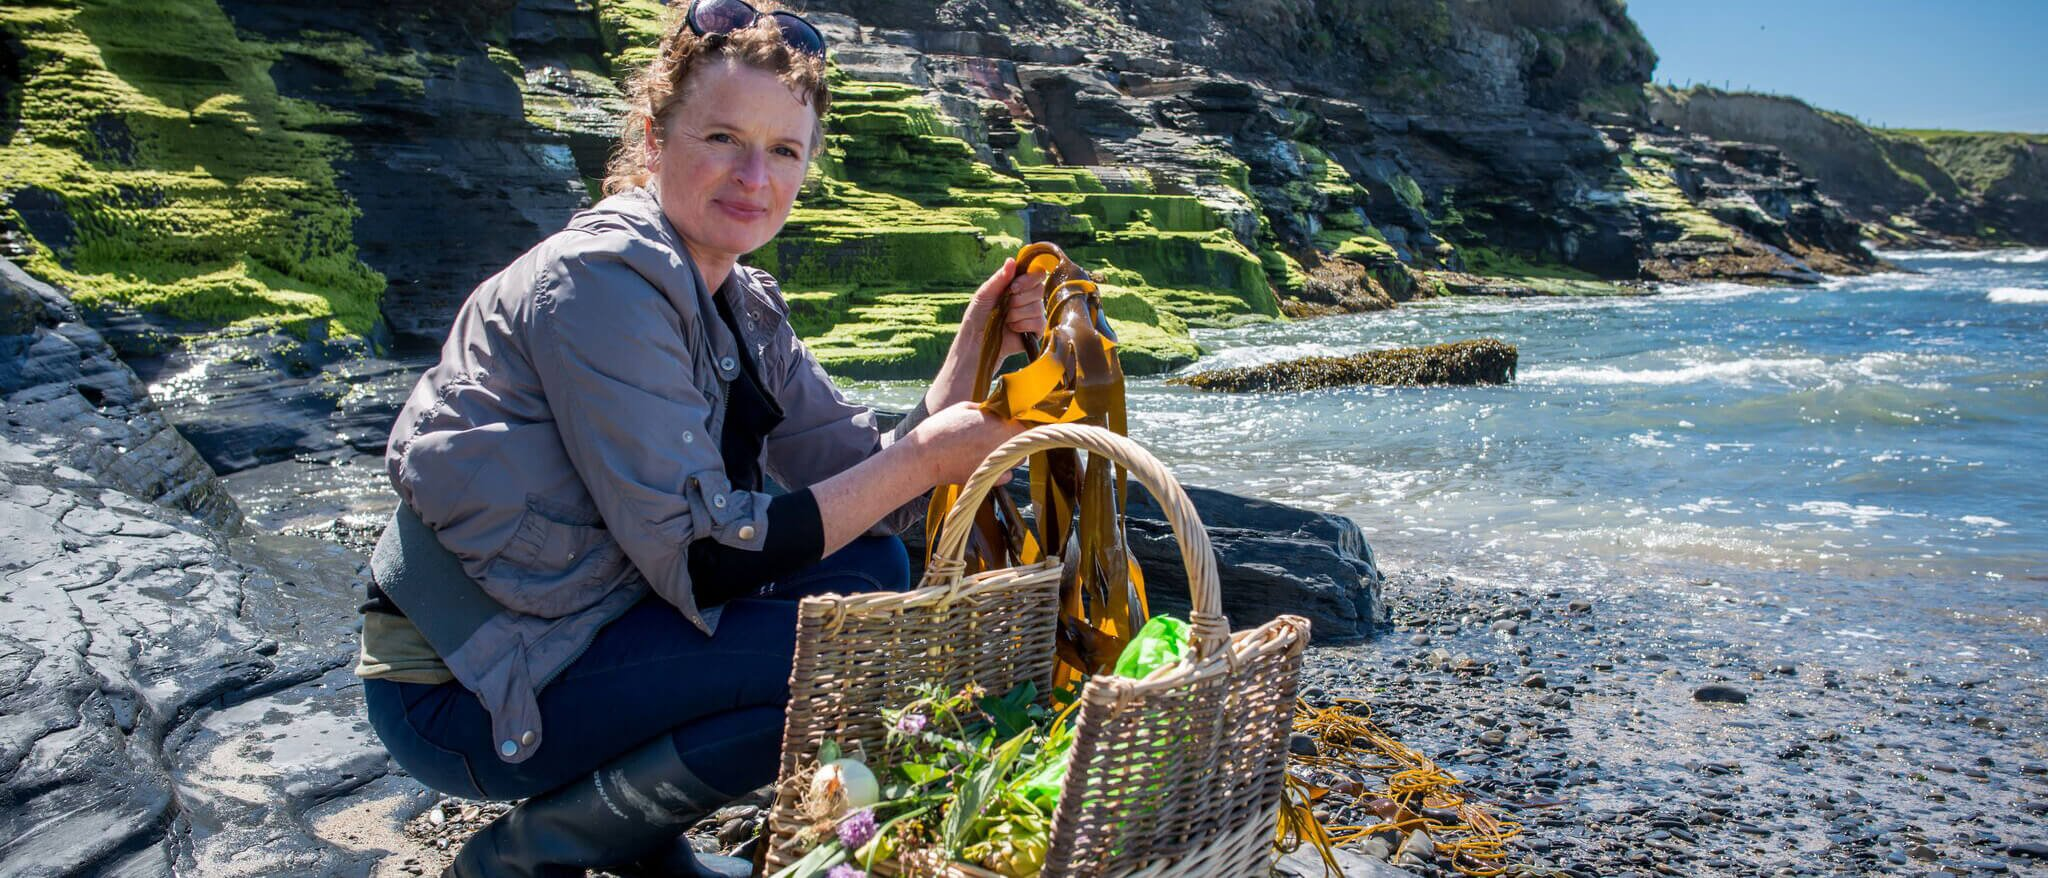 Oonagh Dwyer of Wild Kitchen posing at the coast with a basket of foraged seaweed